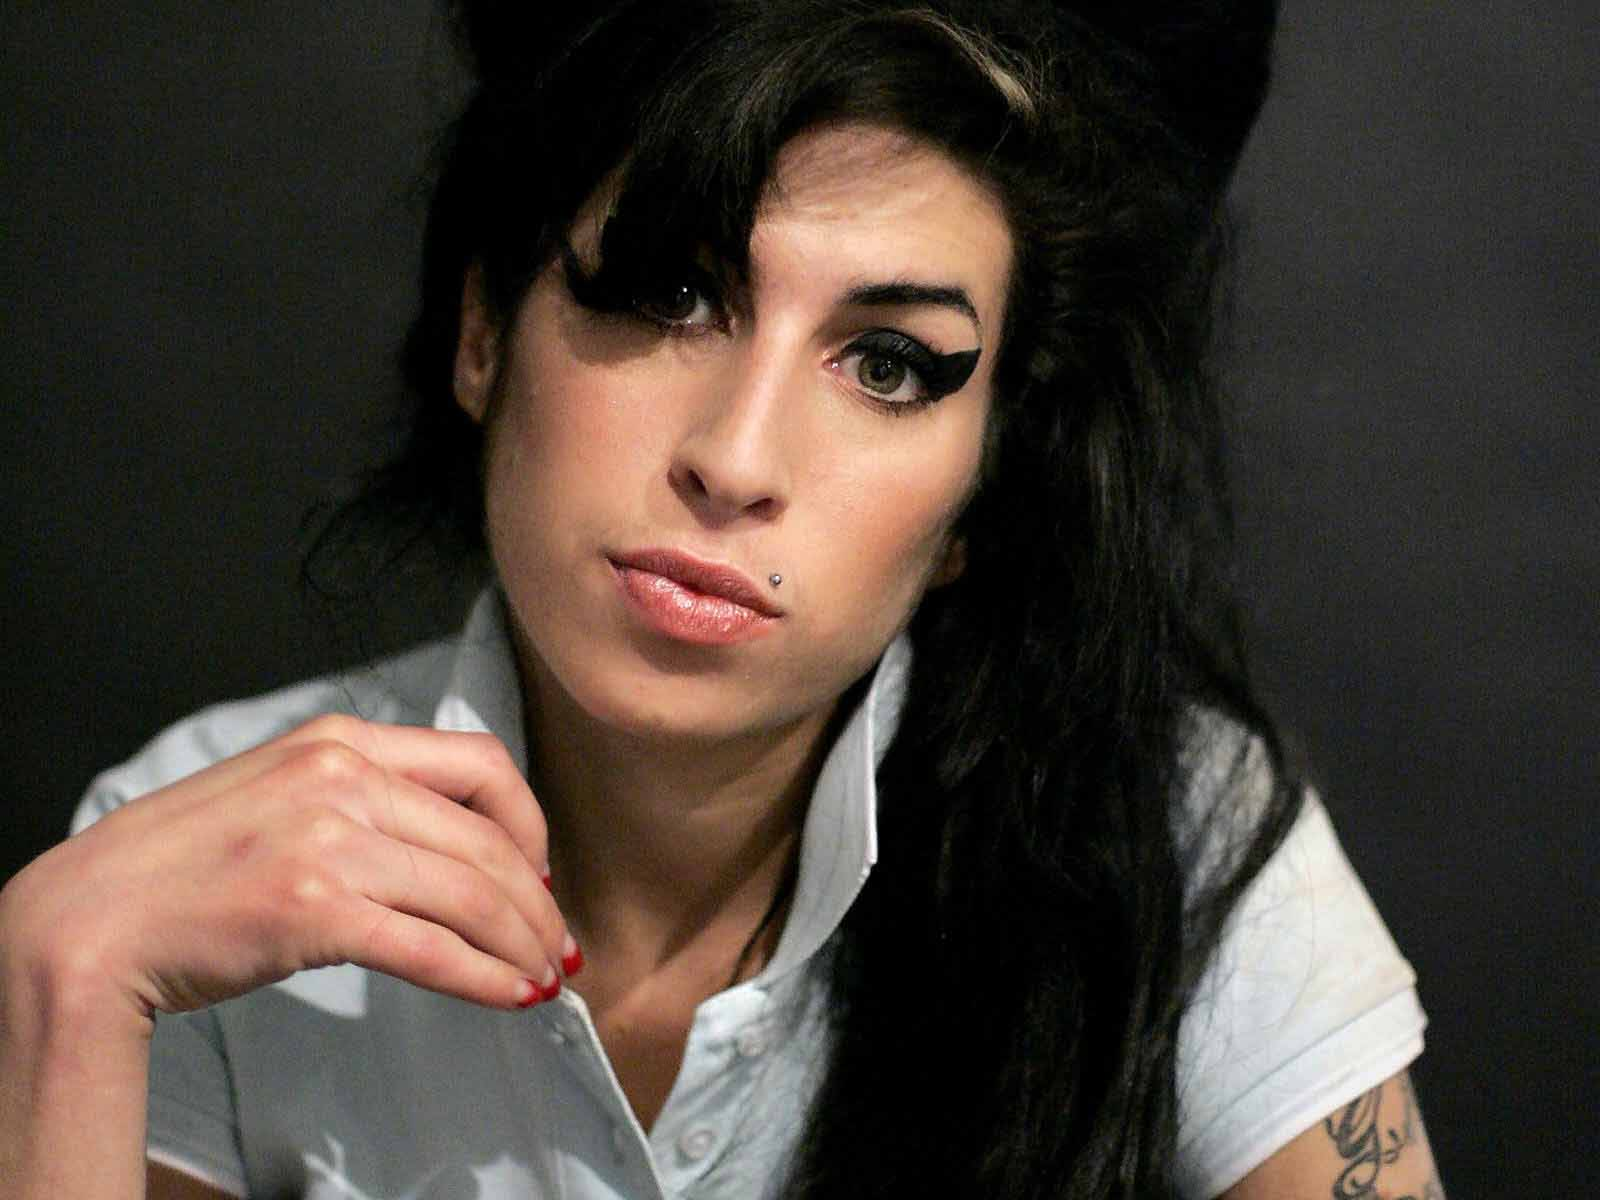 Did you know that Amy Winehouse & Janis Joplin both died ... Amy Winehouse Death